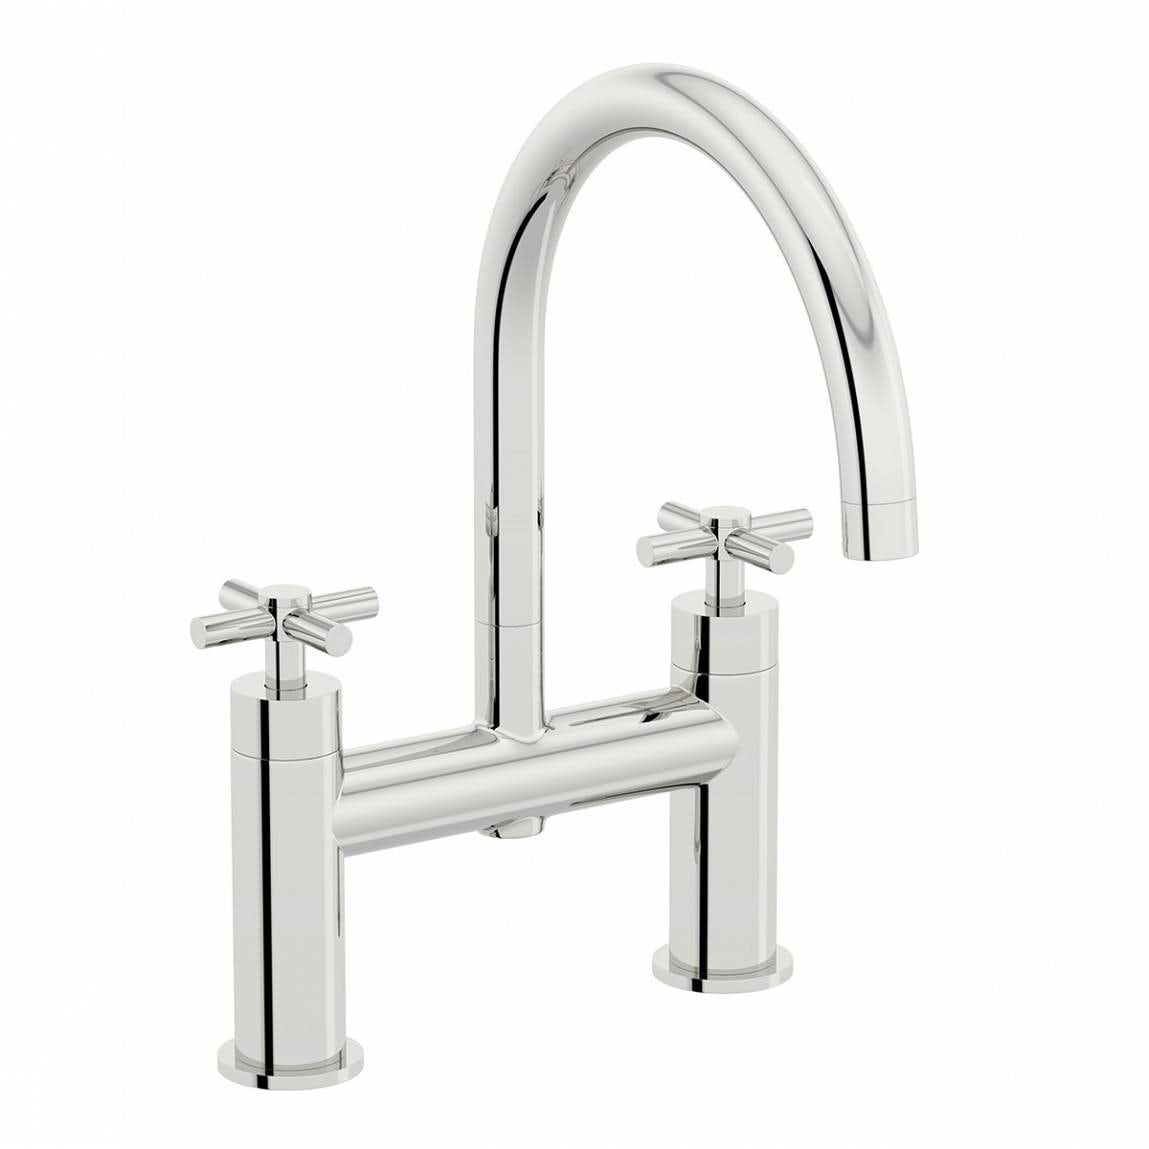 Mode Alexa bath mixer tap